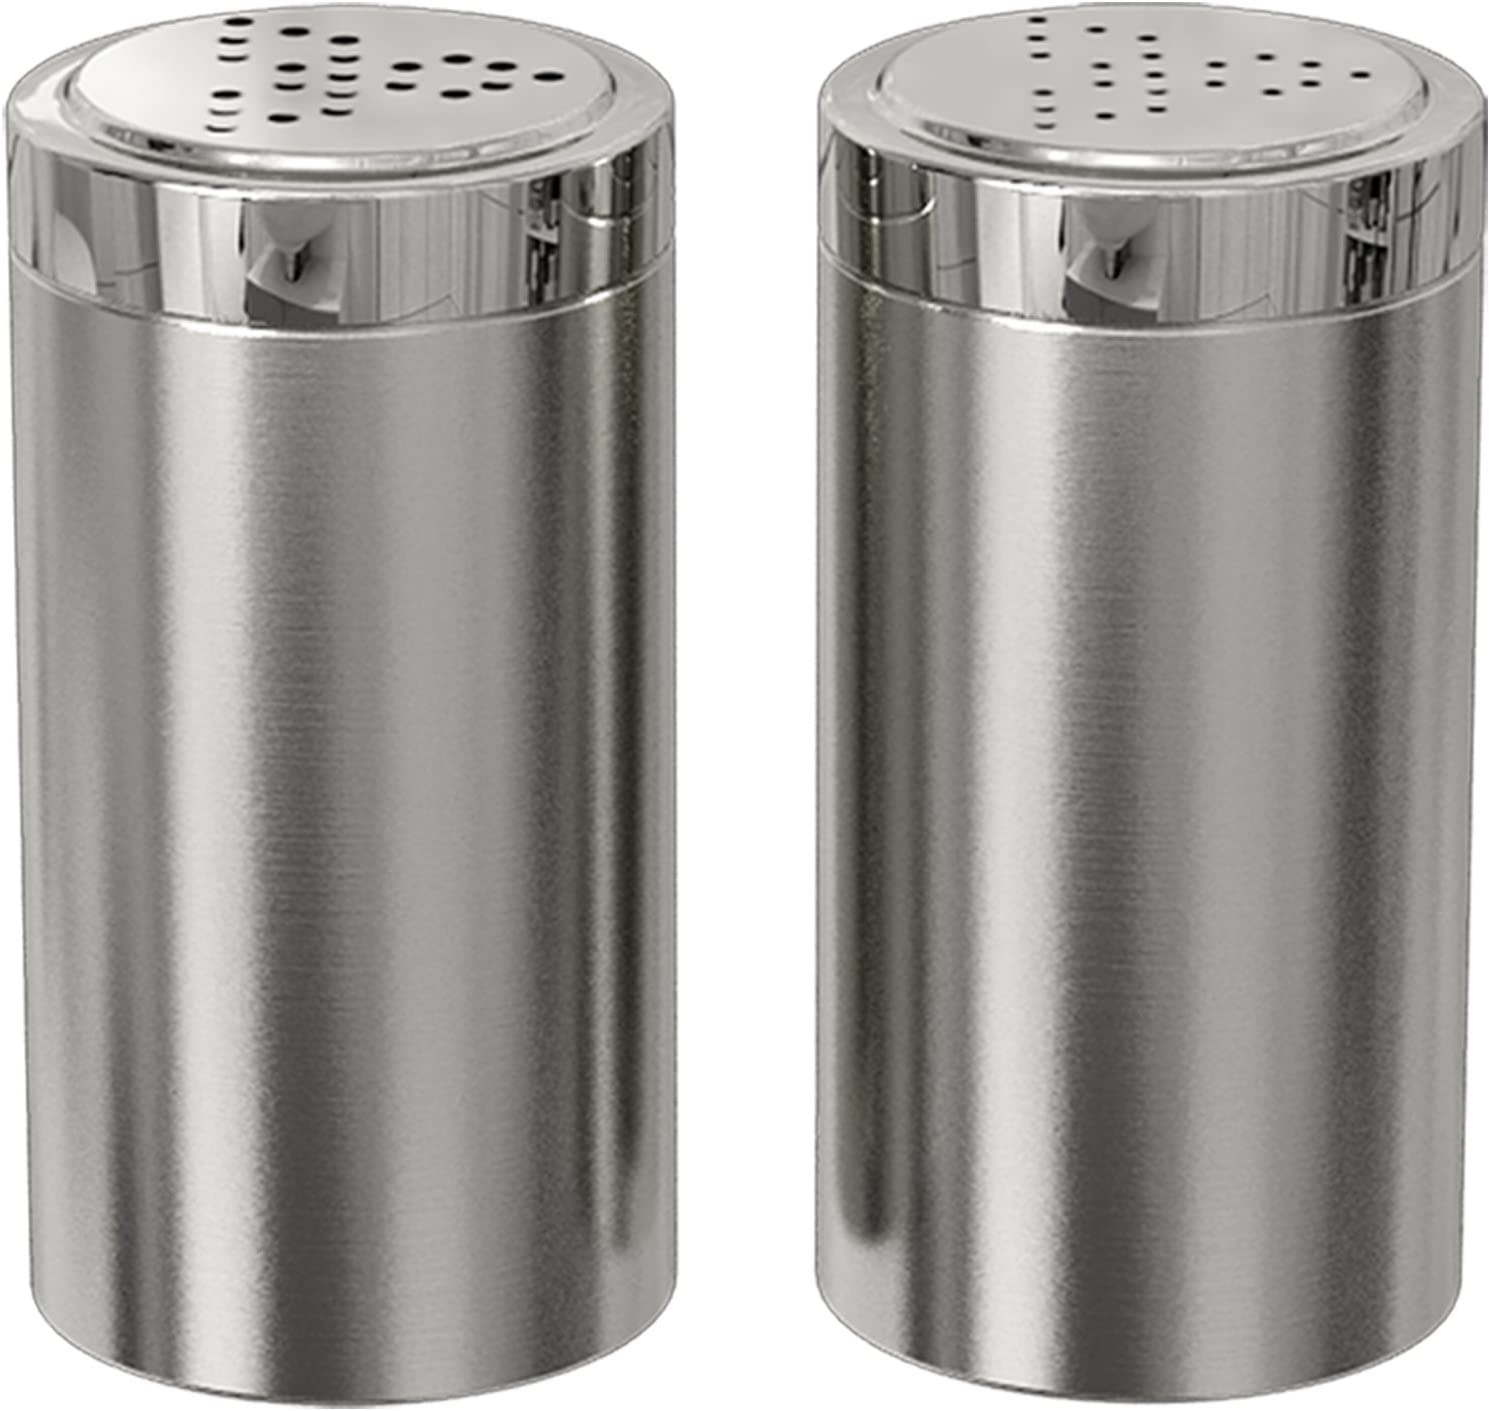 Amazon Com Nu Steel Jumbo Salt Pepper Shaker Set Of 2 15 Oz Stainless Steel With Shiny Finish Small Kitchen Dining